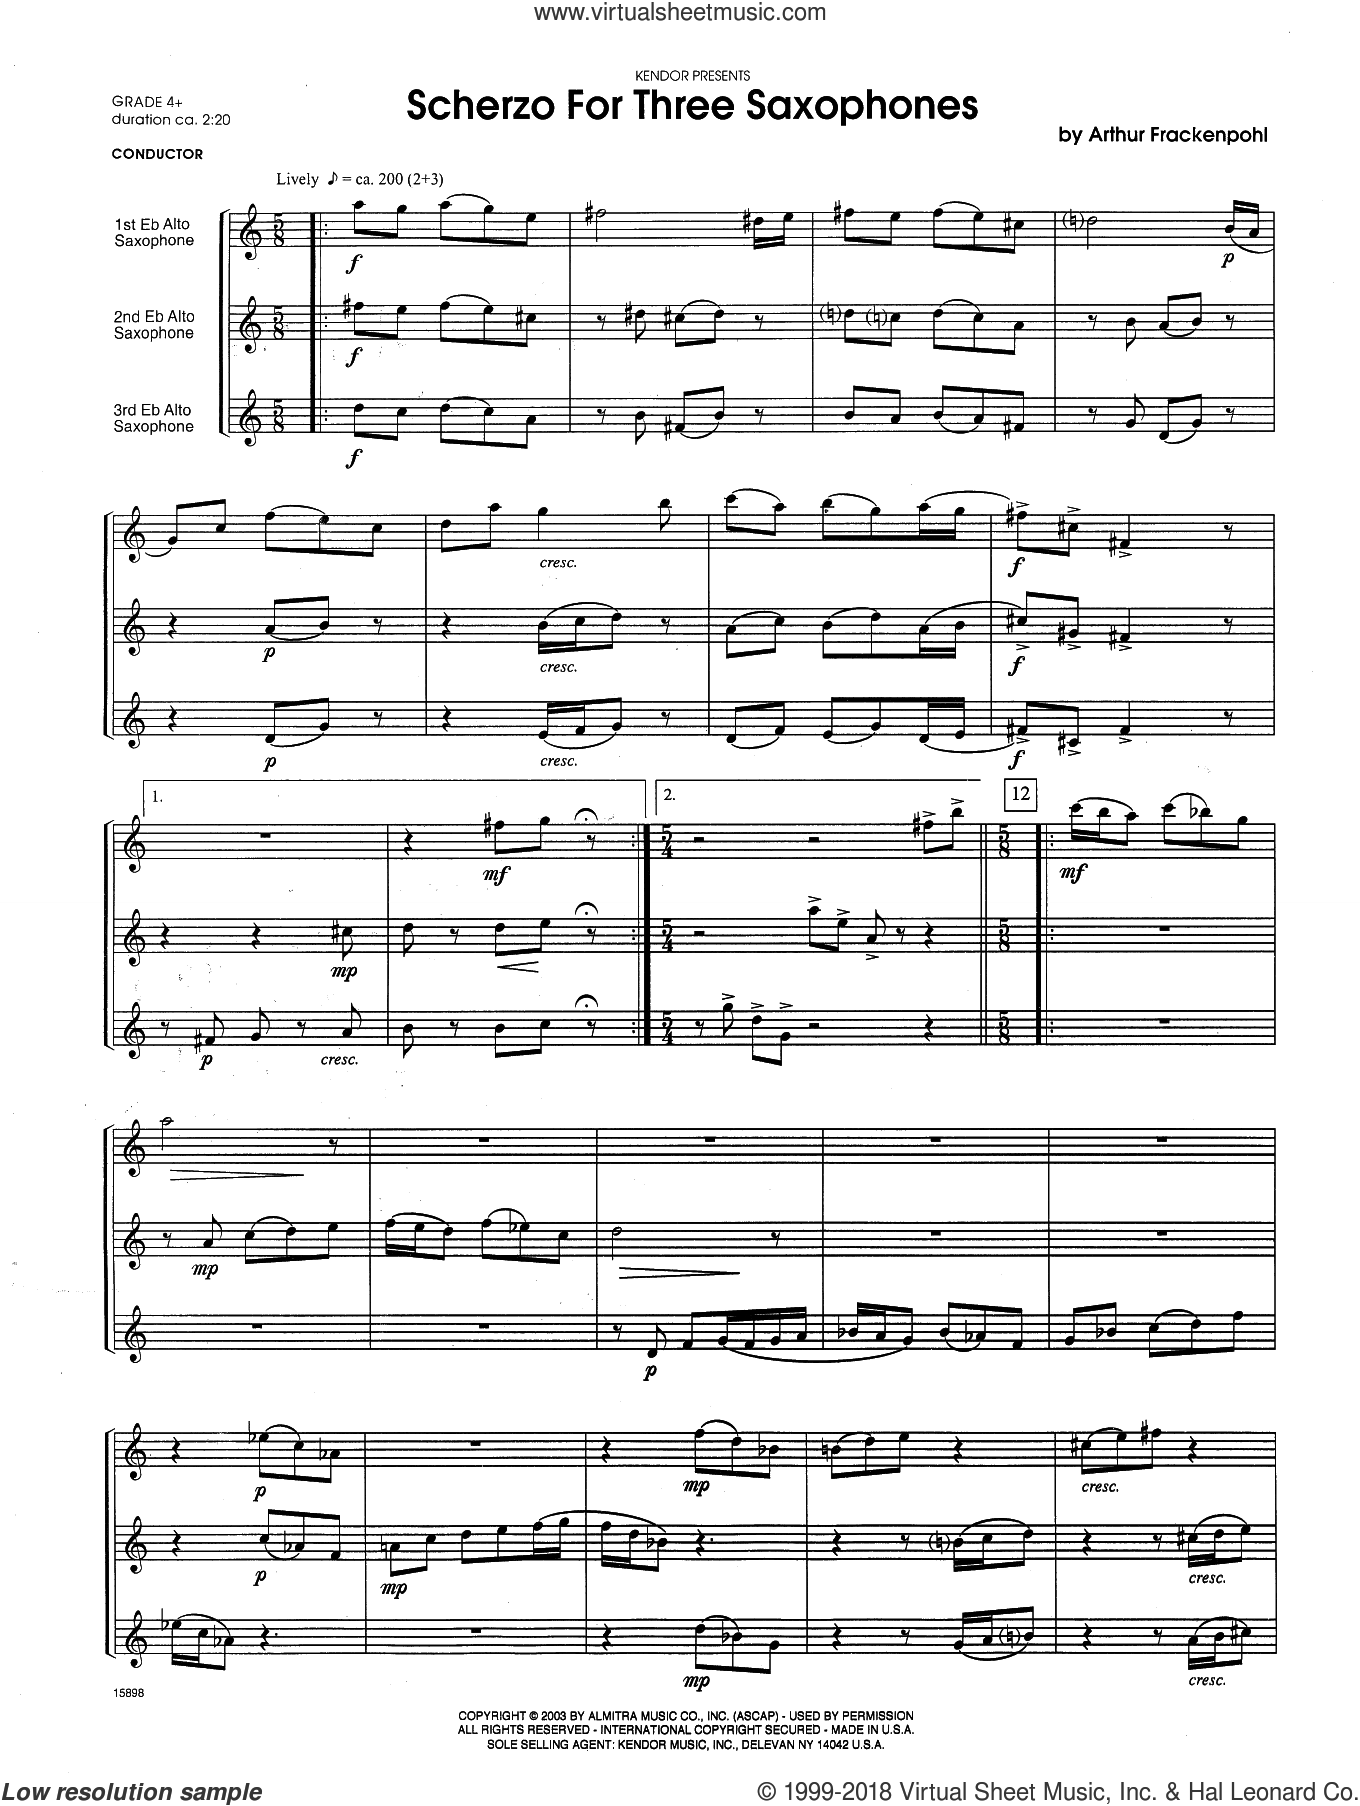 Scherzo For Three Saxophones (COMPLETE) sheet music for saxophone trio by Arthur Frackenpohl, classical score, intermediate skill level